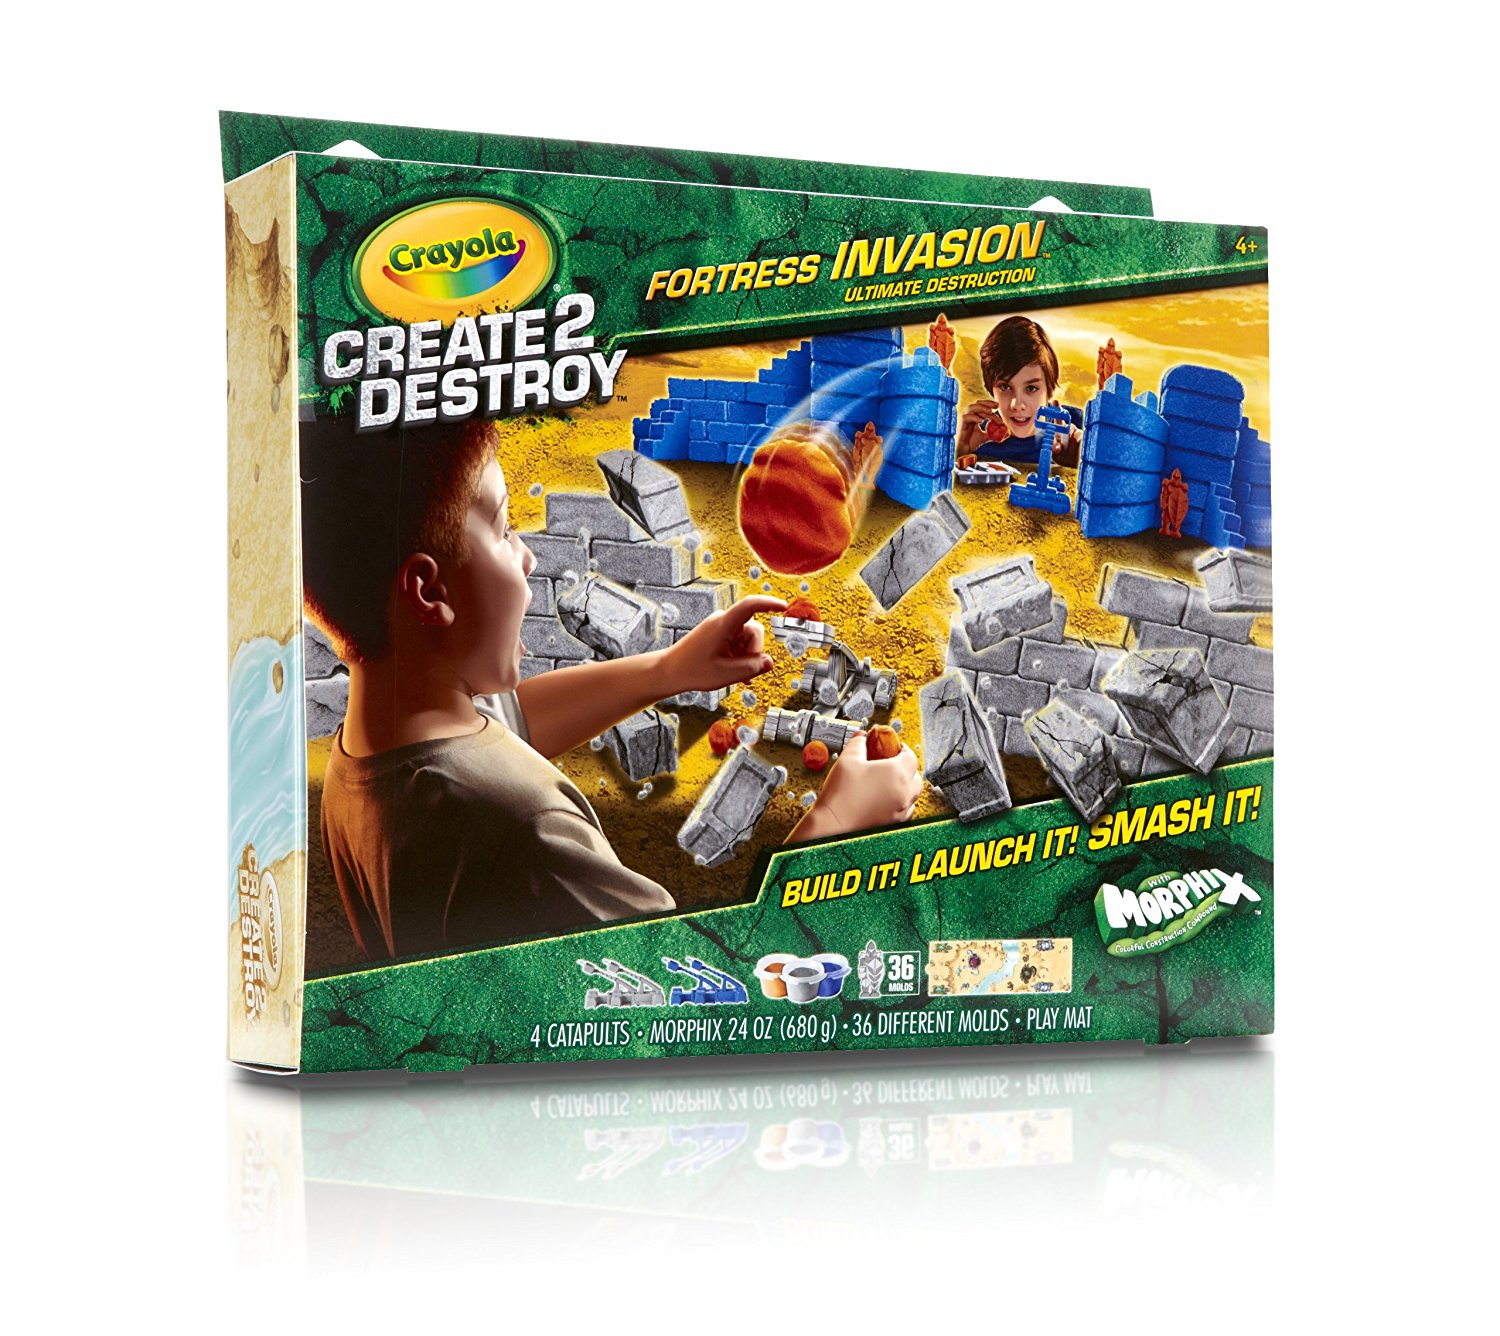 Joc Crayola Create 2 Destroy Fortress Invasion